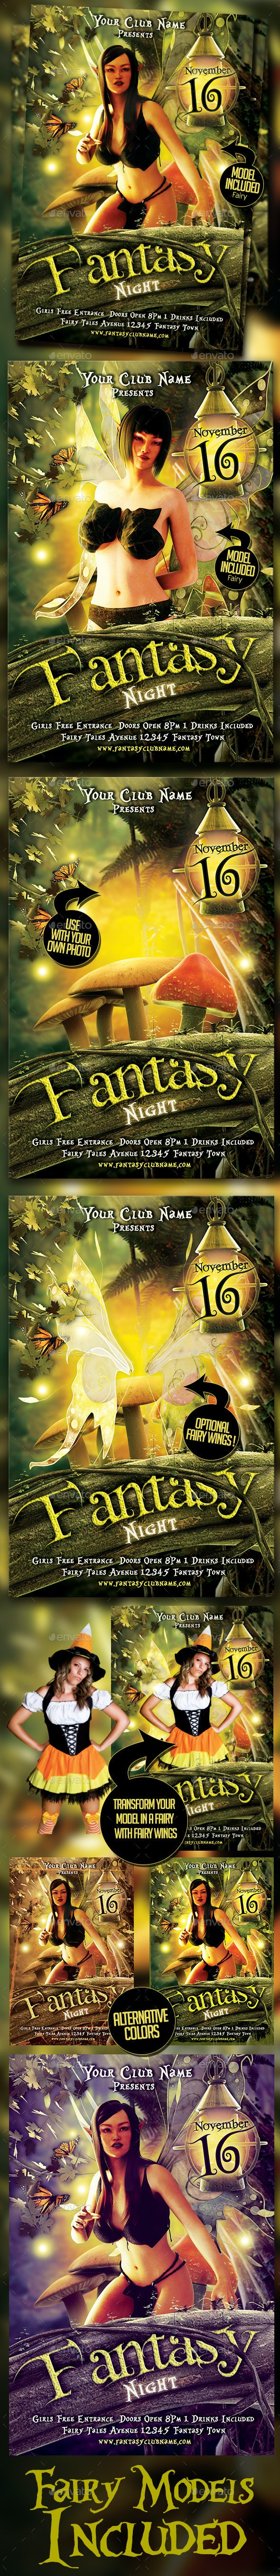 Fantasy Night Flyer Template - Clubs & Parties Events